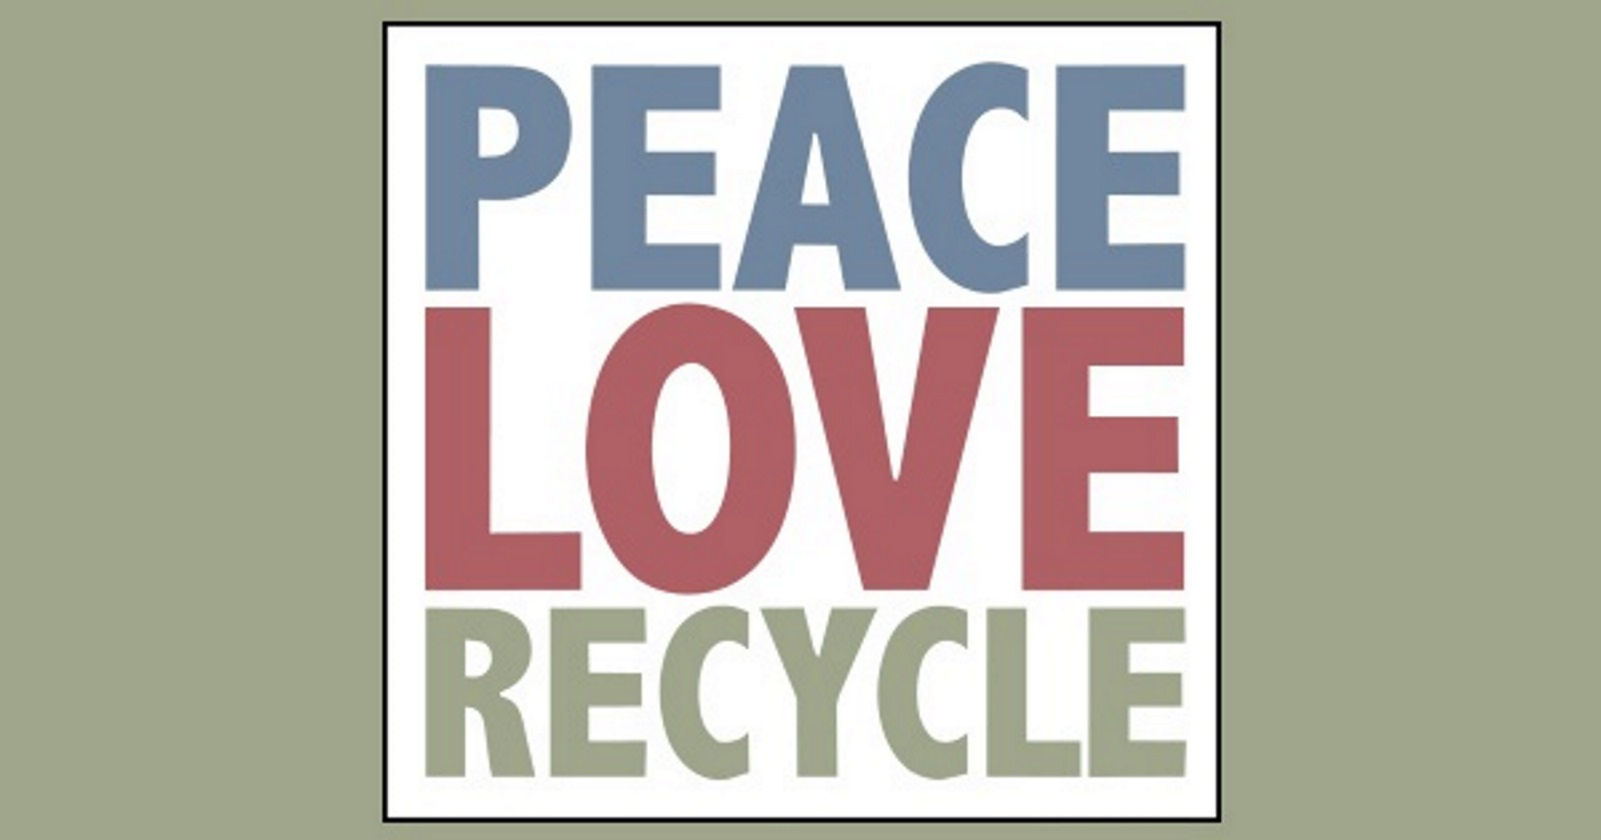 Peace Love Recycle Eco Friendly Poster